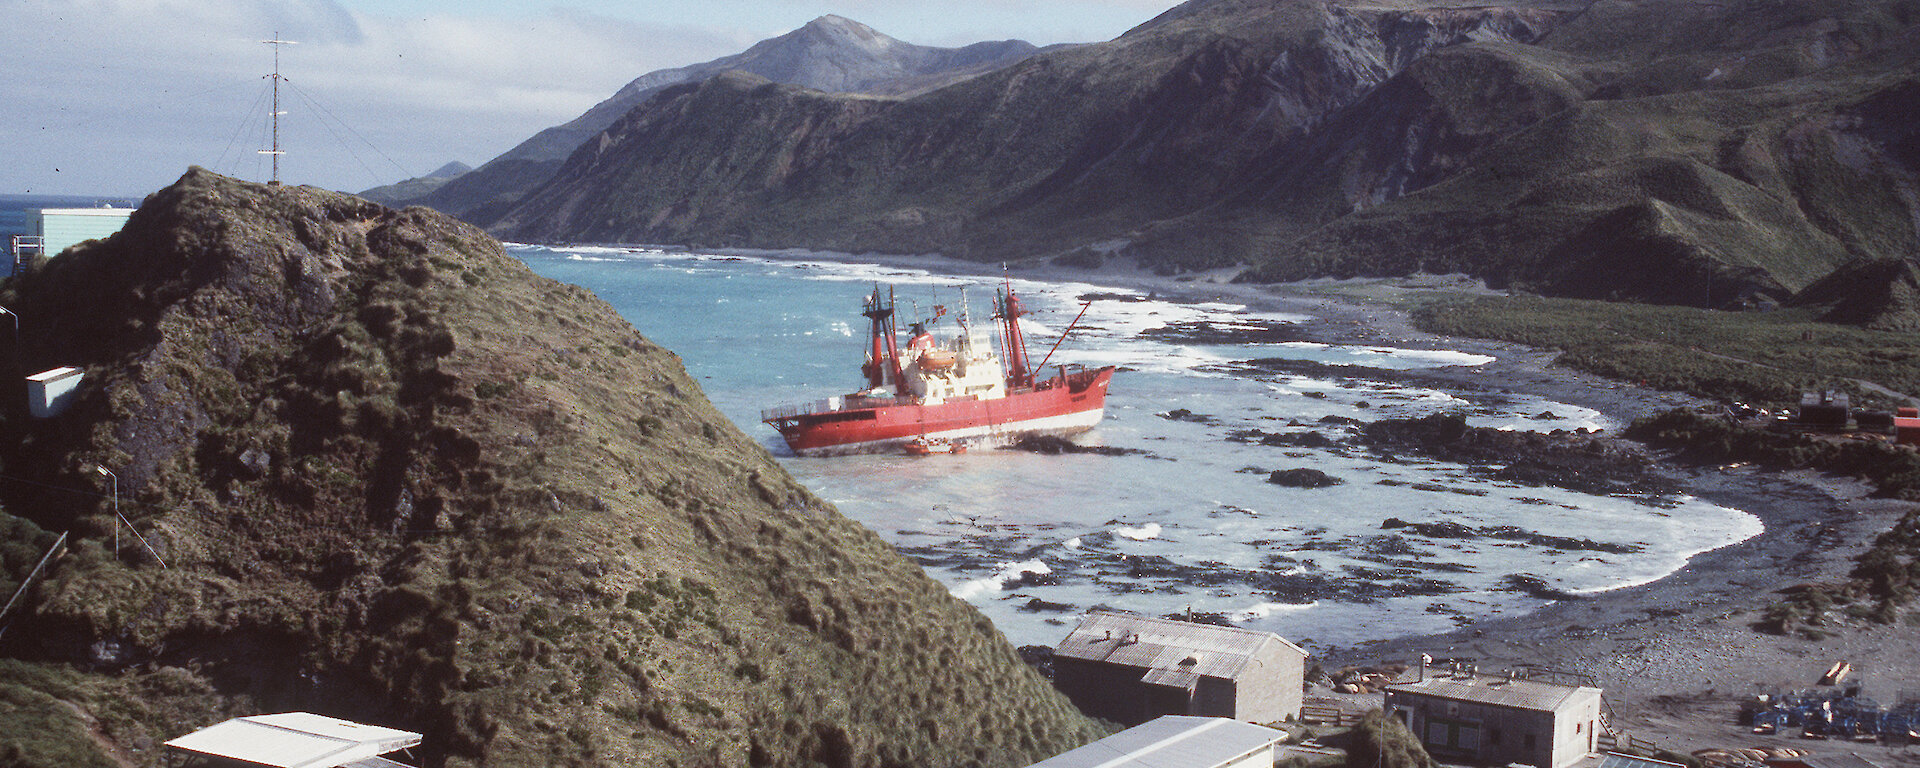 Grounded ship, the Nella Dan, up on rocks near Macquarie Island station buildings